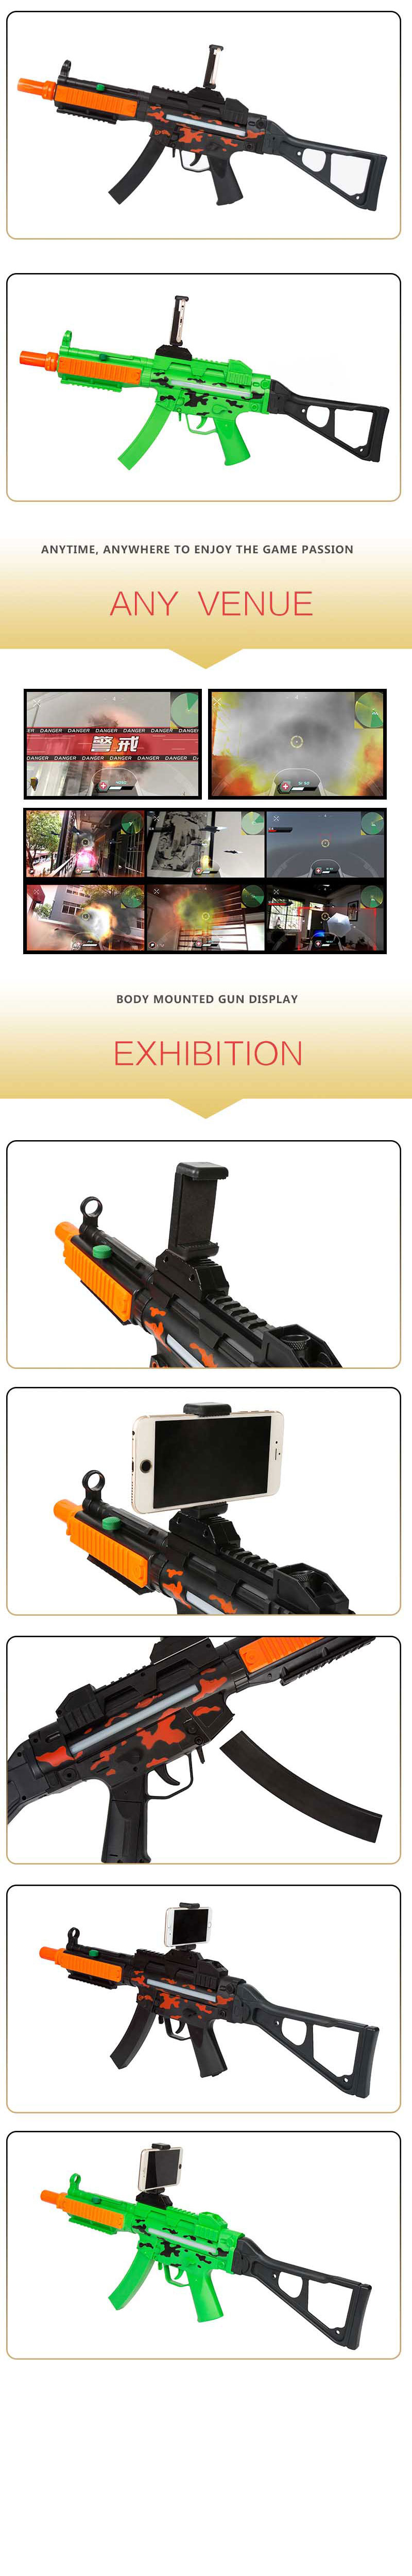 Portable Bluetooth AR-Gun 3010 VR Games Toys for Android iOS iPhone Phones